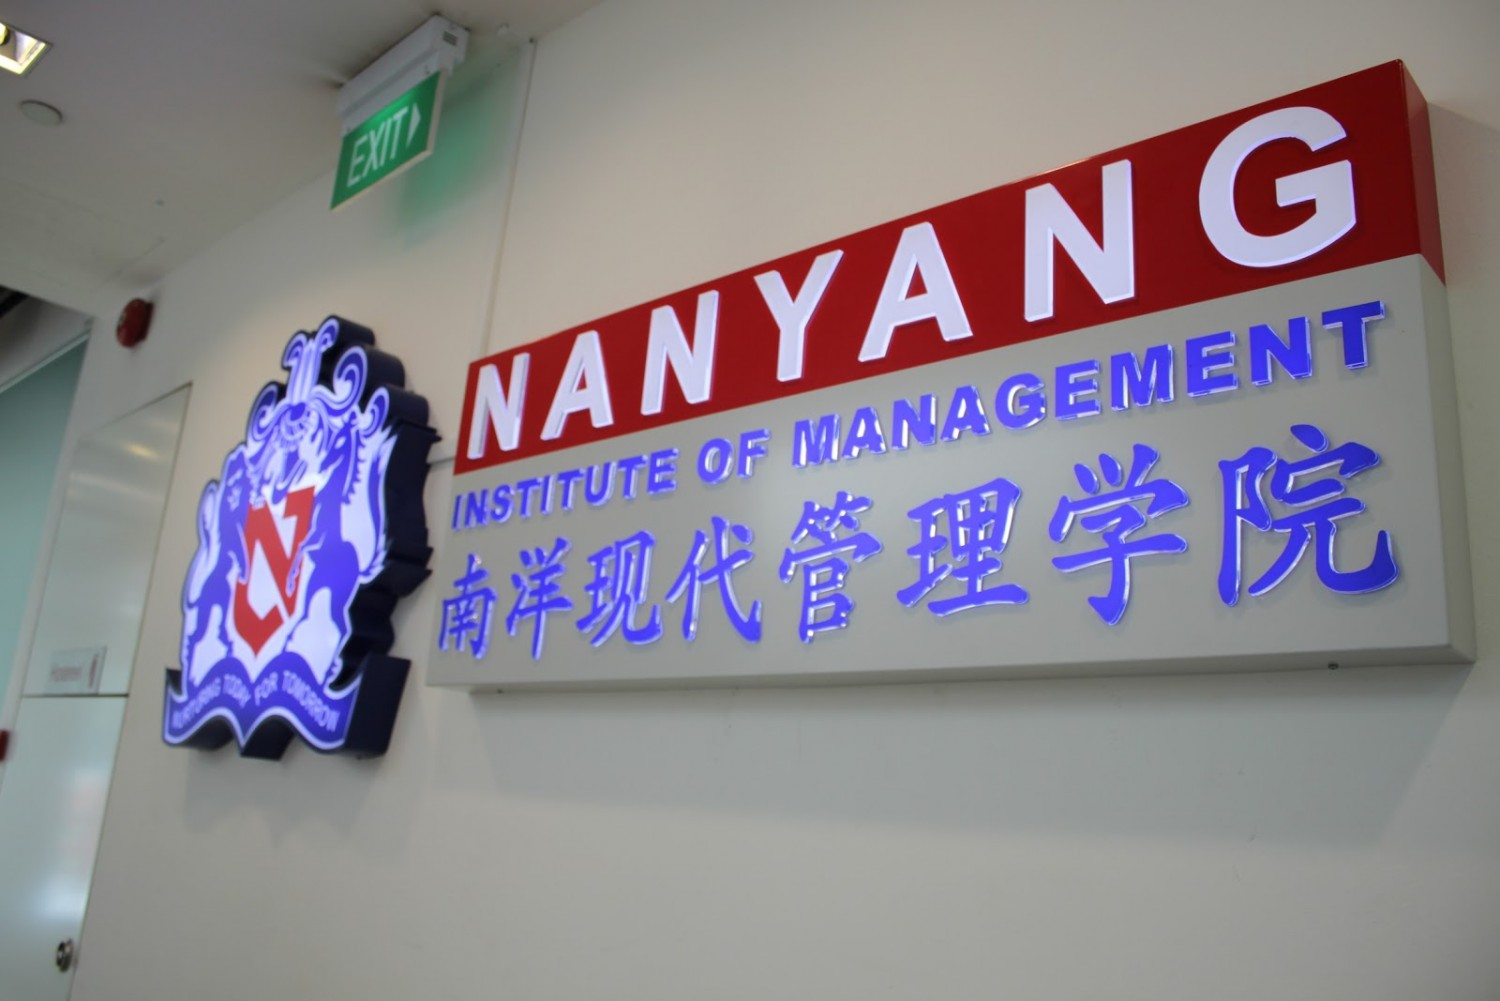 hoc vien quan ly nanyang institu management